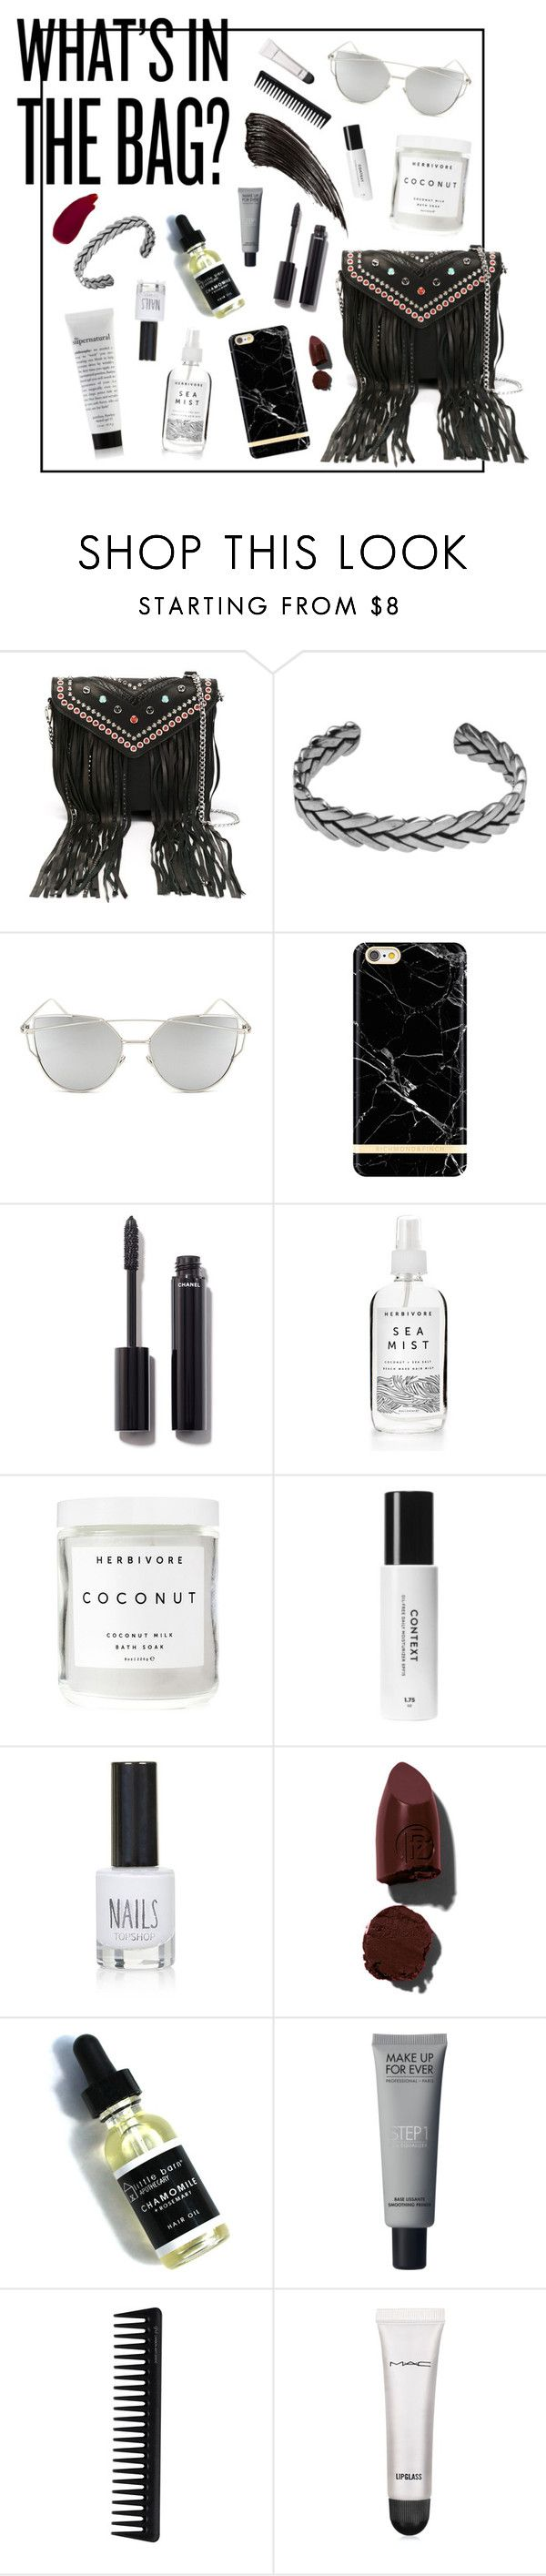 """What's in the bag?!"" by htc-los-angeles on Polyvore featuring moda, Hollywood Trading Company, HTC, Chicnova Fashion, Chanel, Herbivore Botanicals, Topshop, Lipstick Queen, GHD e MAC Cosmetics"